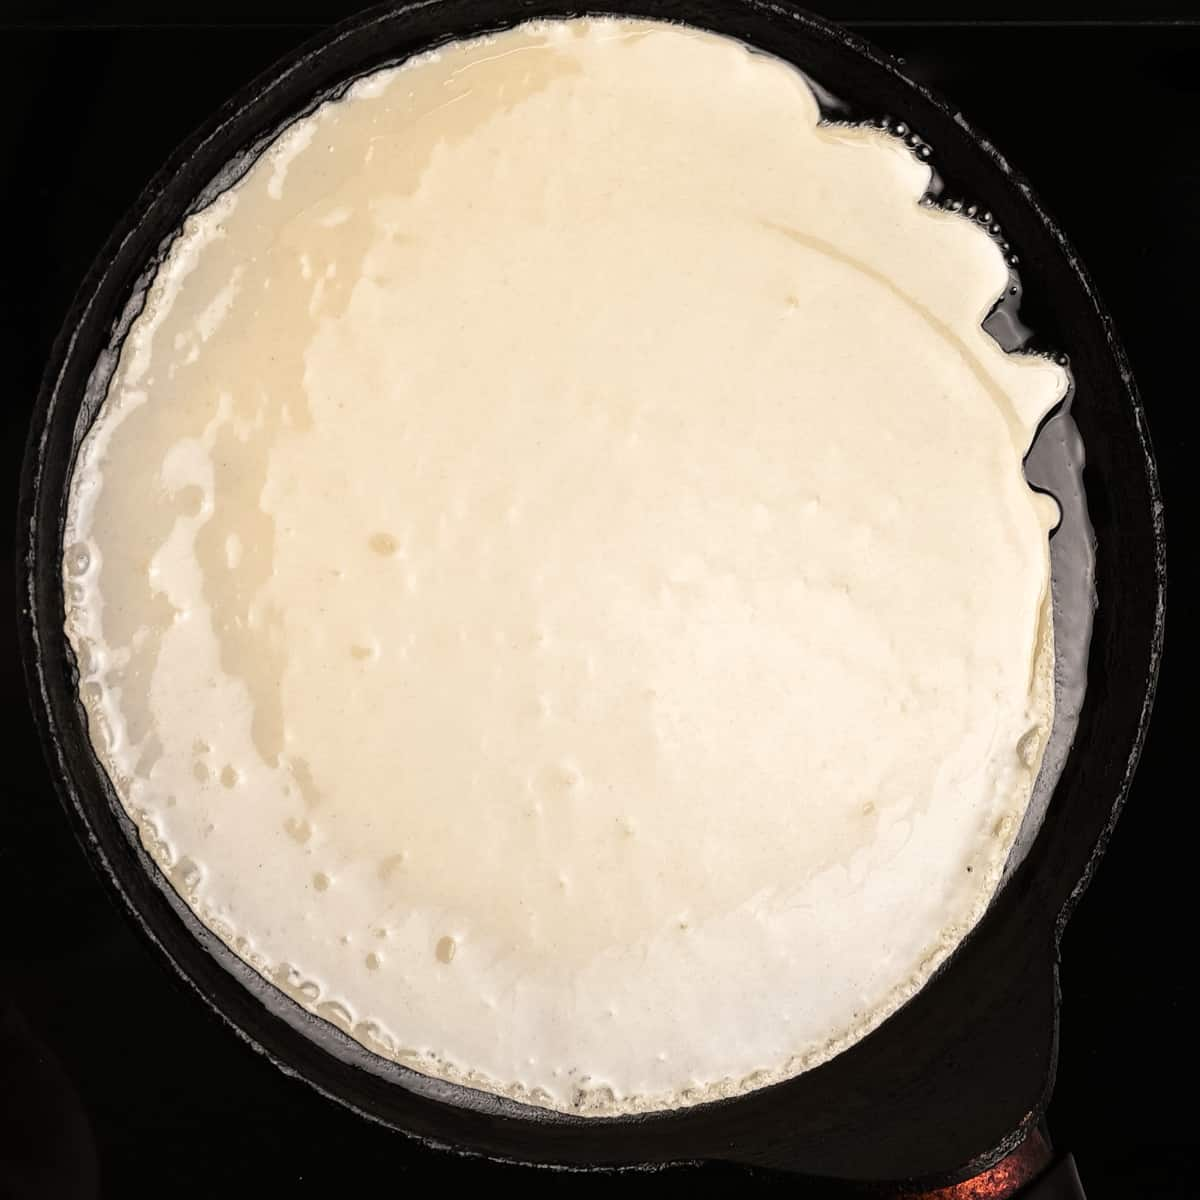 Tilting the pancake pan to spread out the batter.